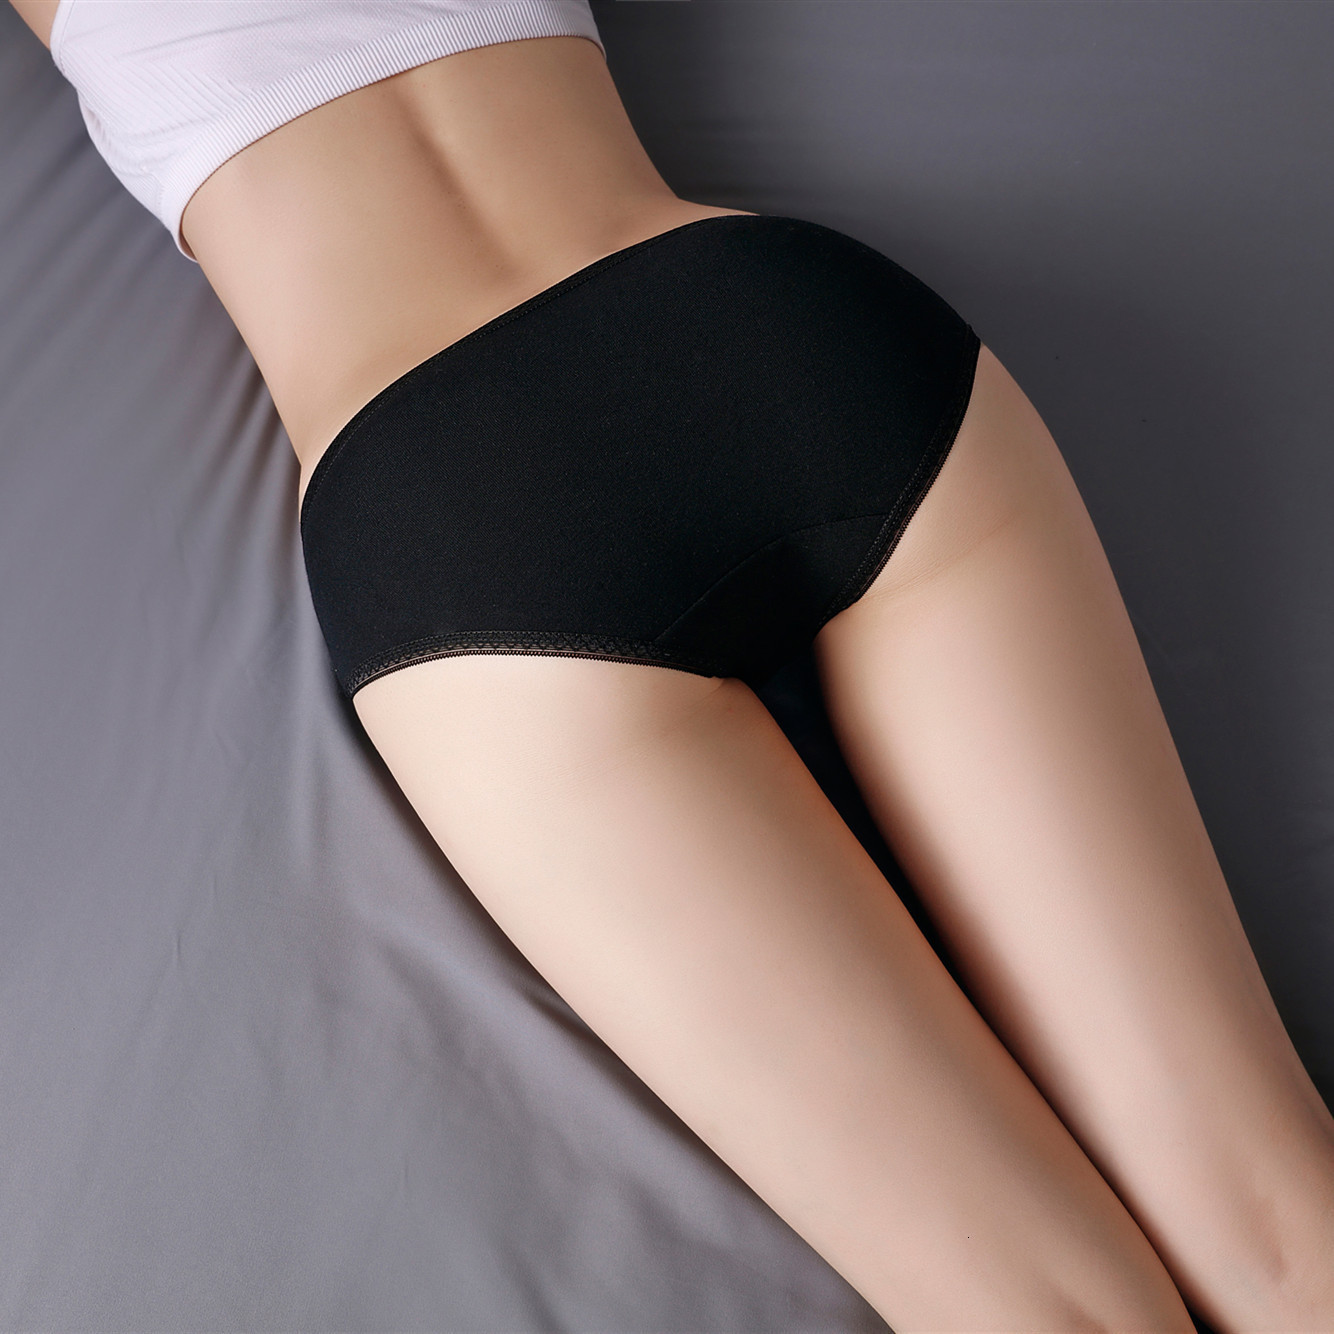 Women's Panties Soft Cotton Underwear Breathable Briefs For Women Sexy Low-Rise Panty 1Pc Solid Panty Ladies Bikini #RTEW